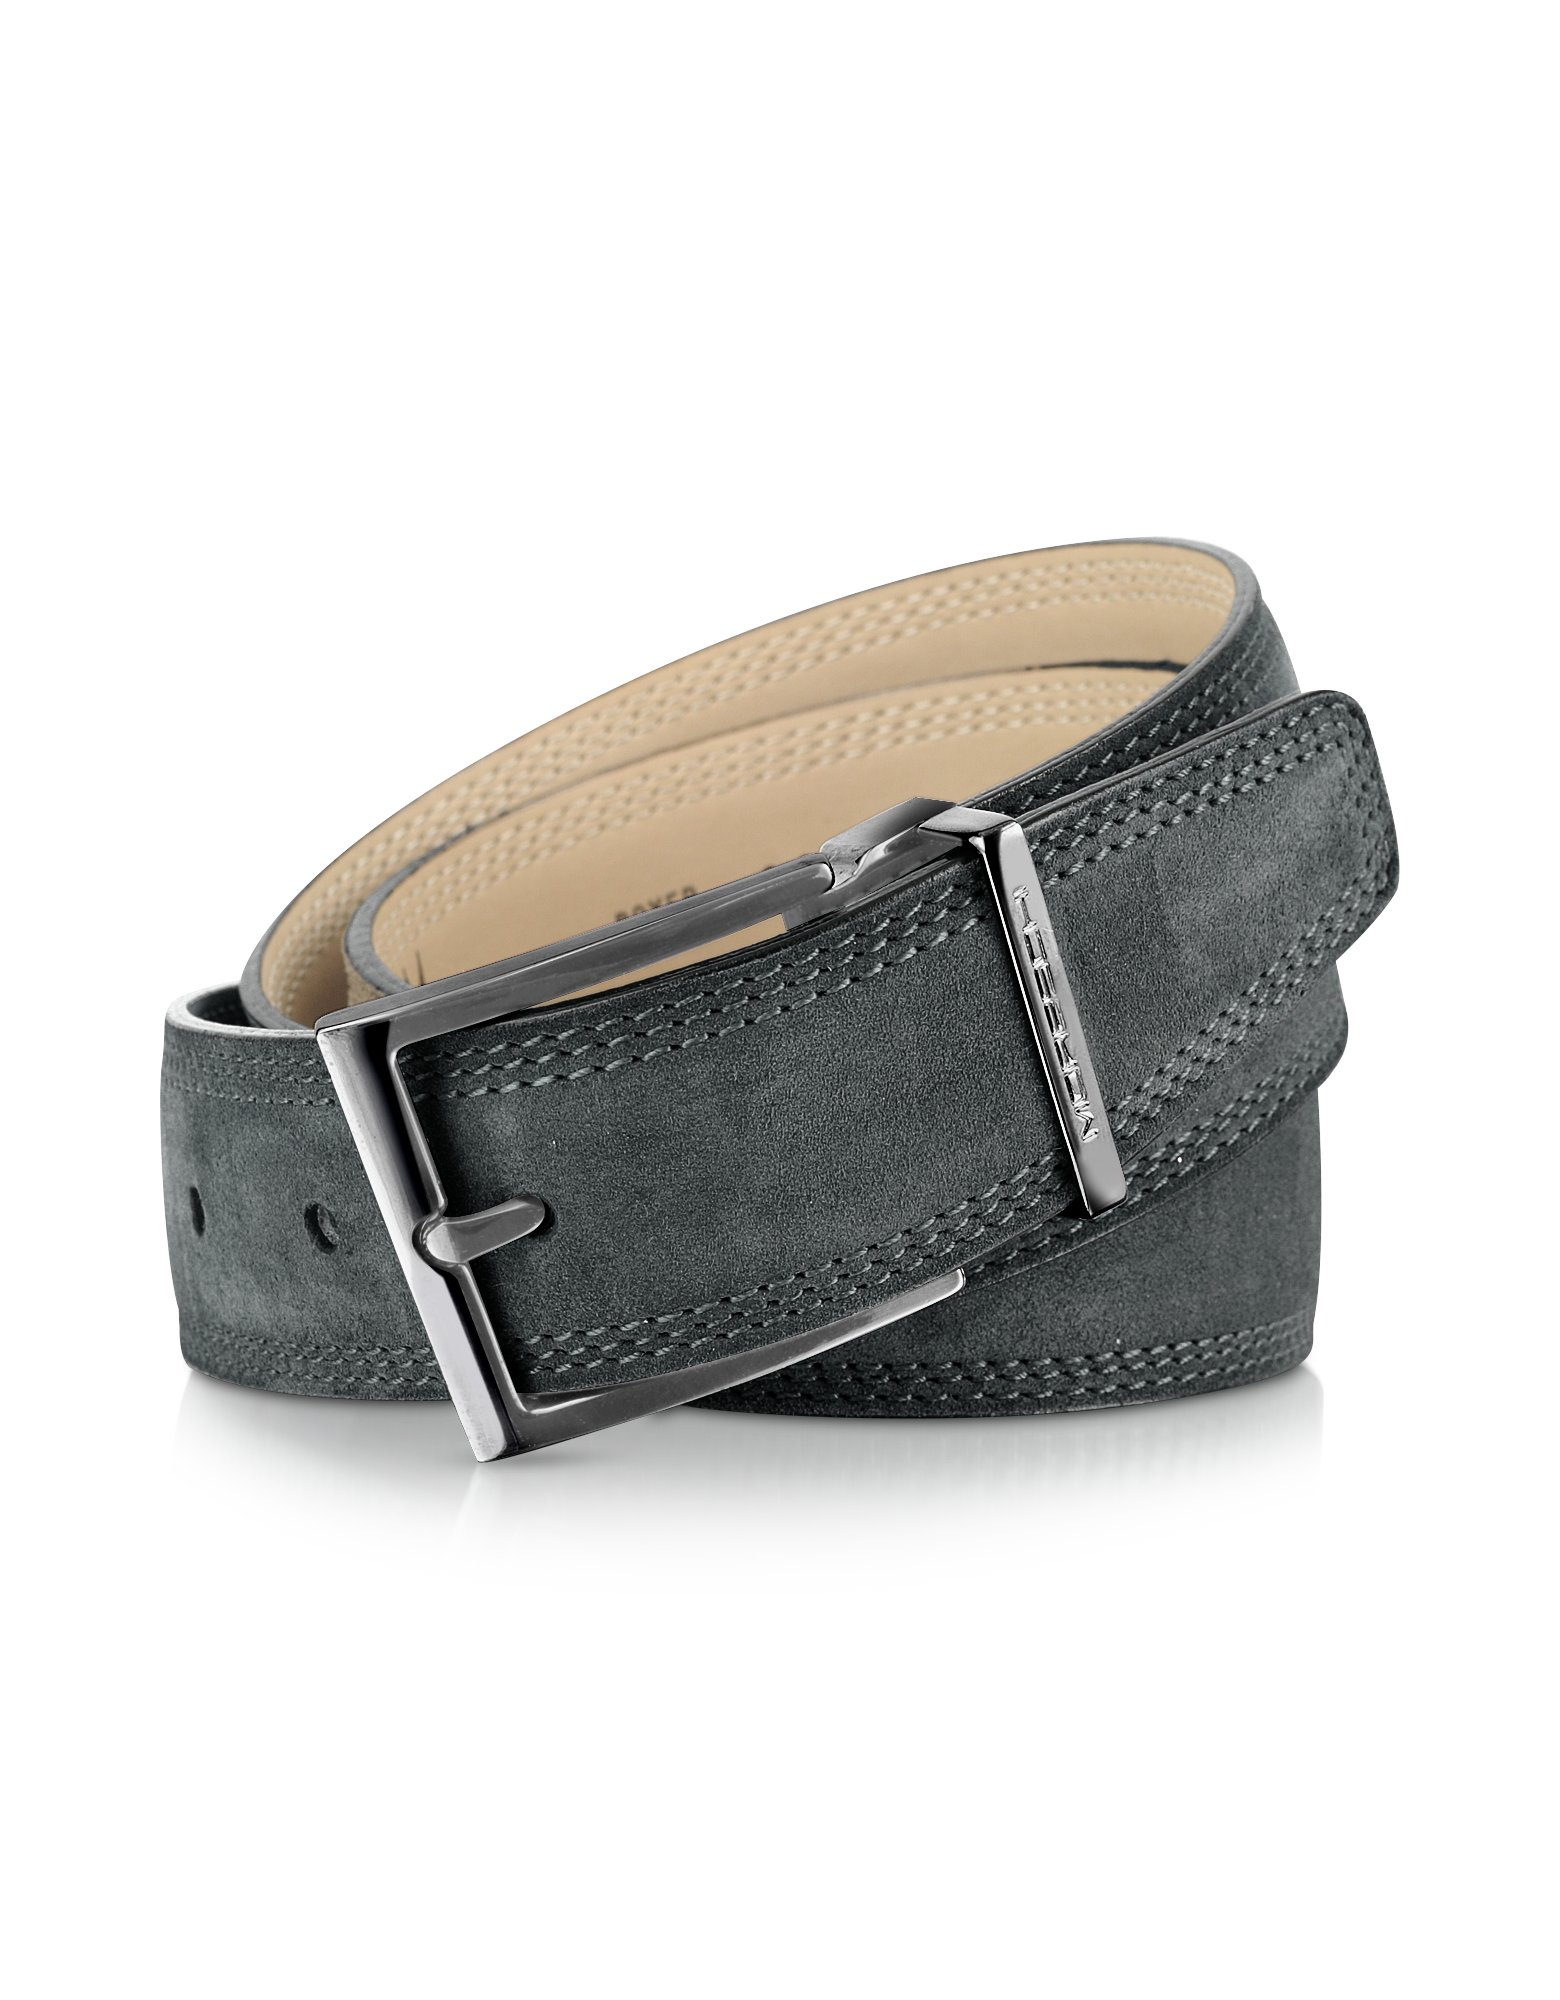 moreschi stiria gray leather belt in gray for